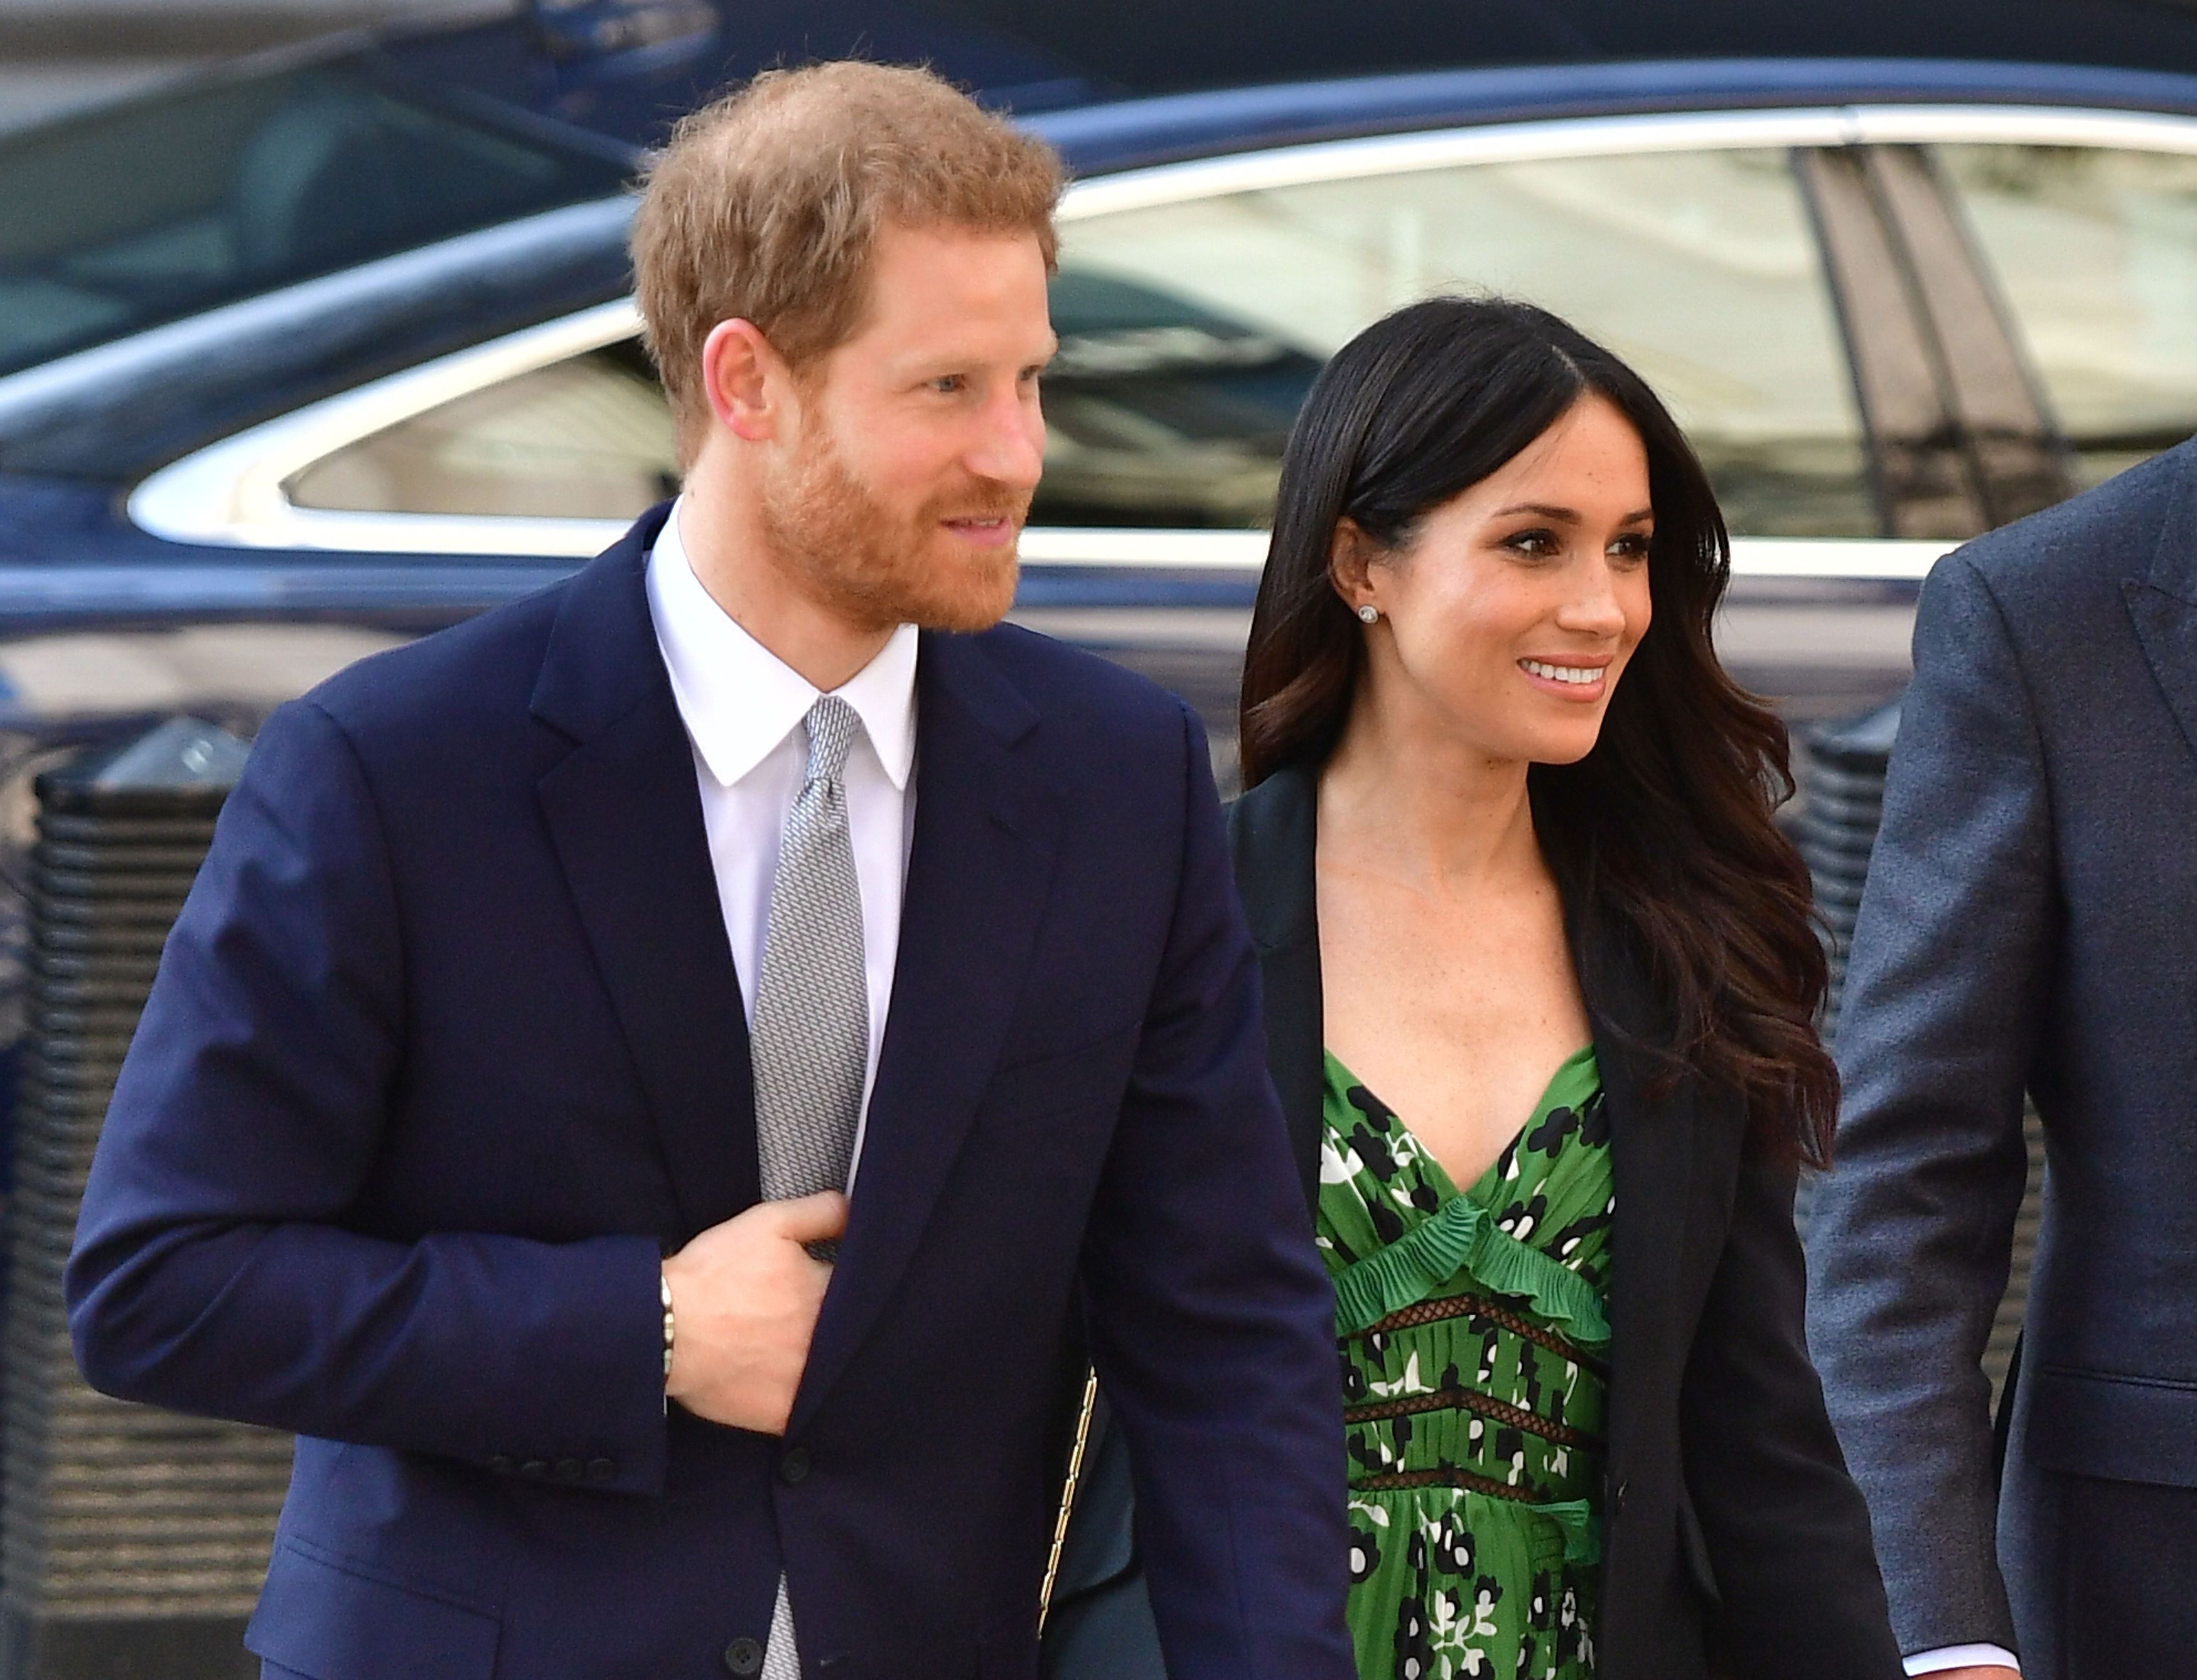 232537f7a7c5 Meghan Markle Wore the Prettiest Green Self-Portrait Dress to the Sydney  Invictus Games Reception